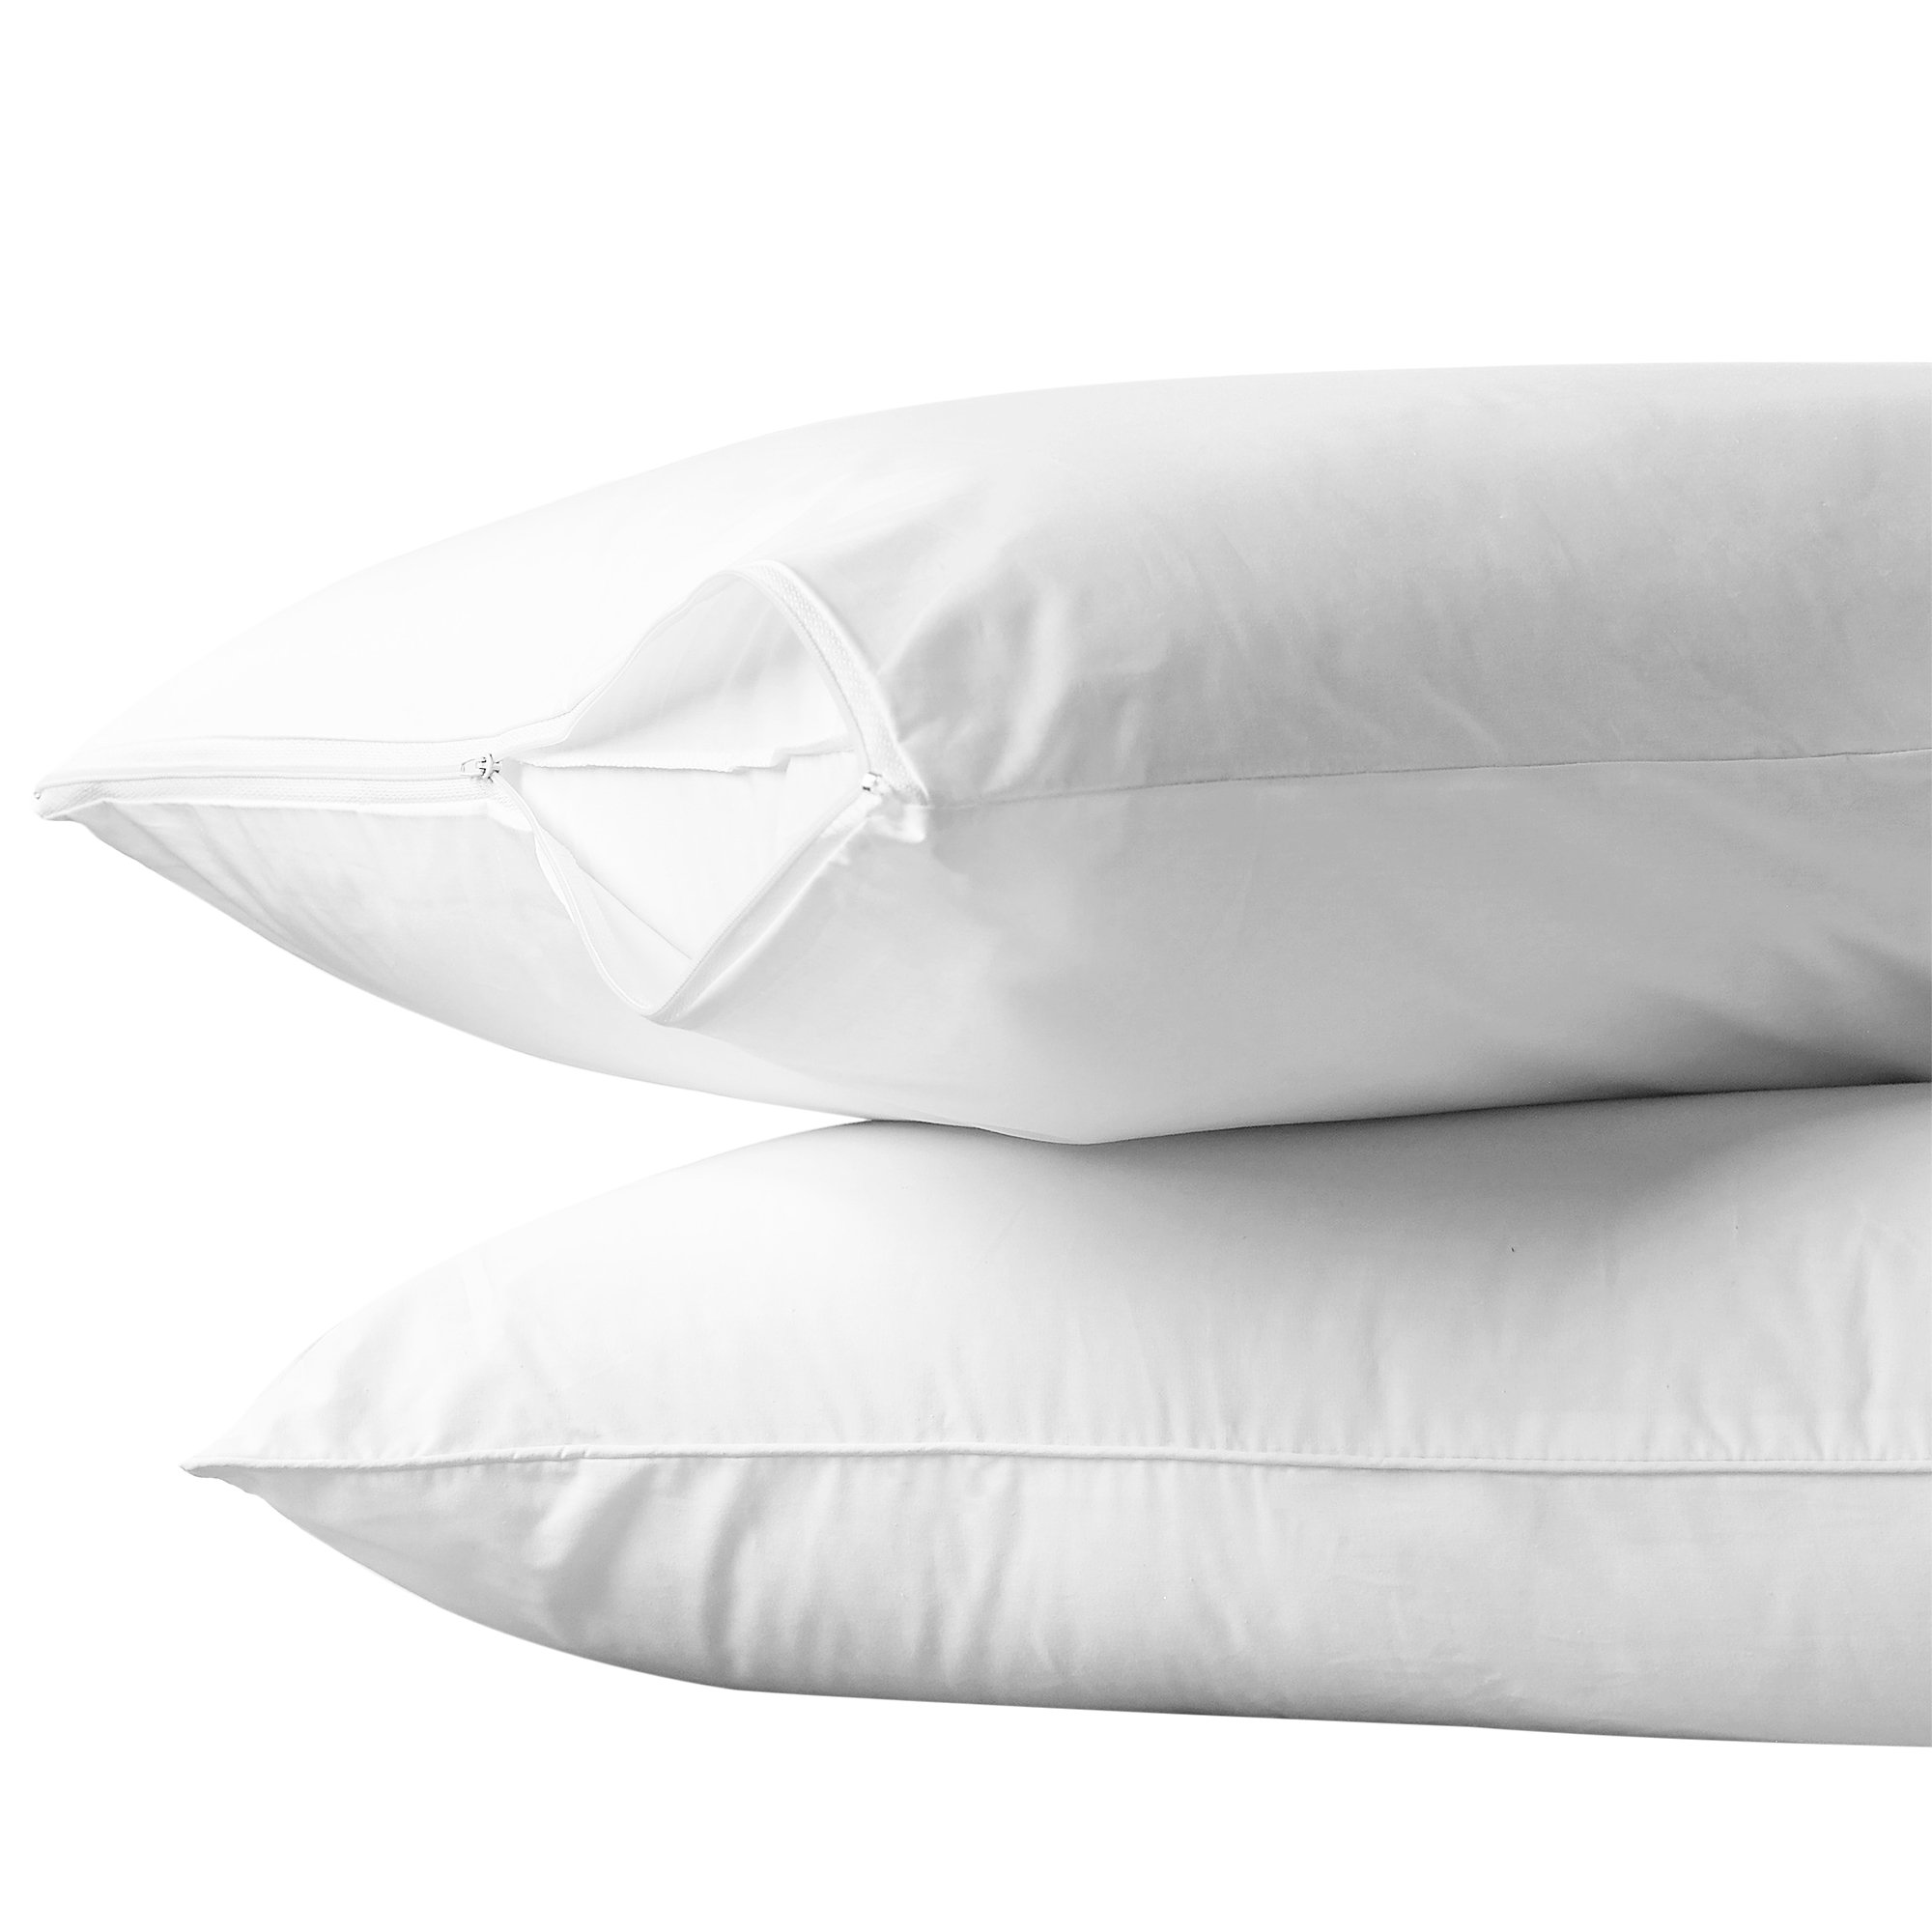 """AllerEase 100% Cotton Allergy Protection Pillow Protectors – Hypoallergenic, Zippered, Allergist Recommended, Prevent Collection of Dust Mites and Other Allergens, Queen Sized, 20"""" x 30"""" (Set of 2)"""